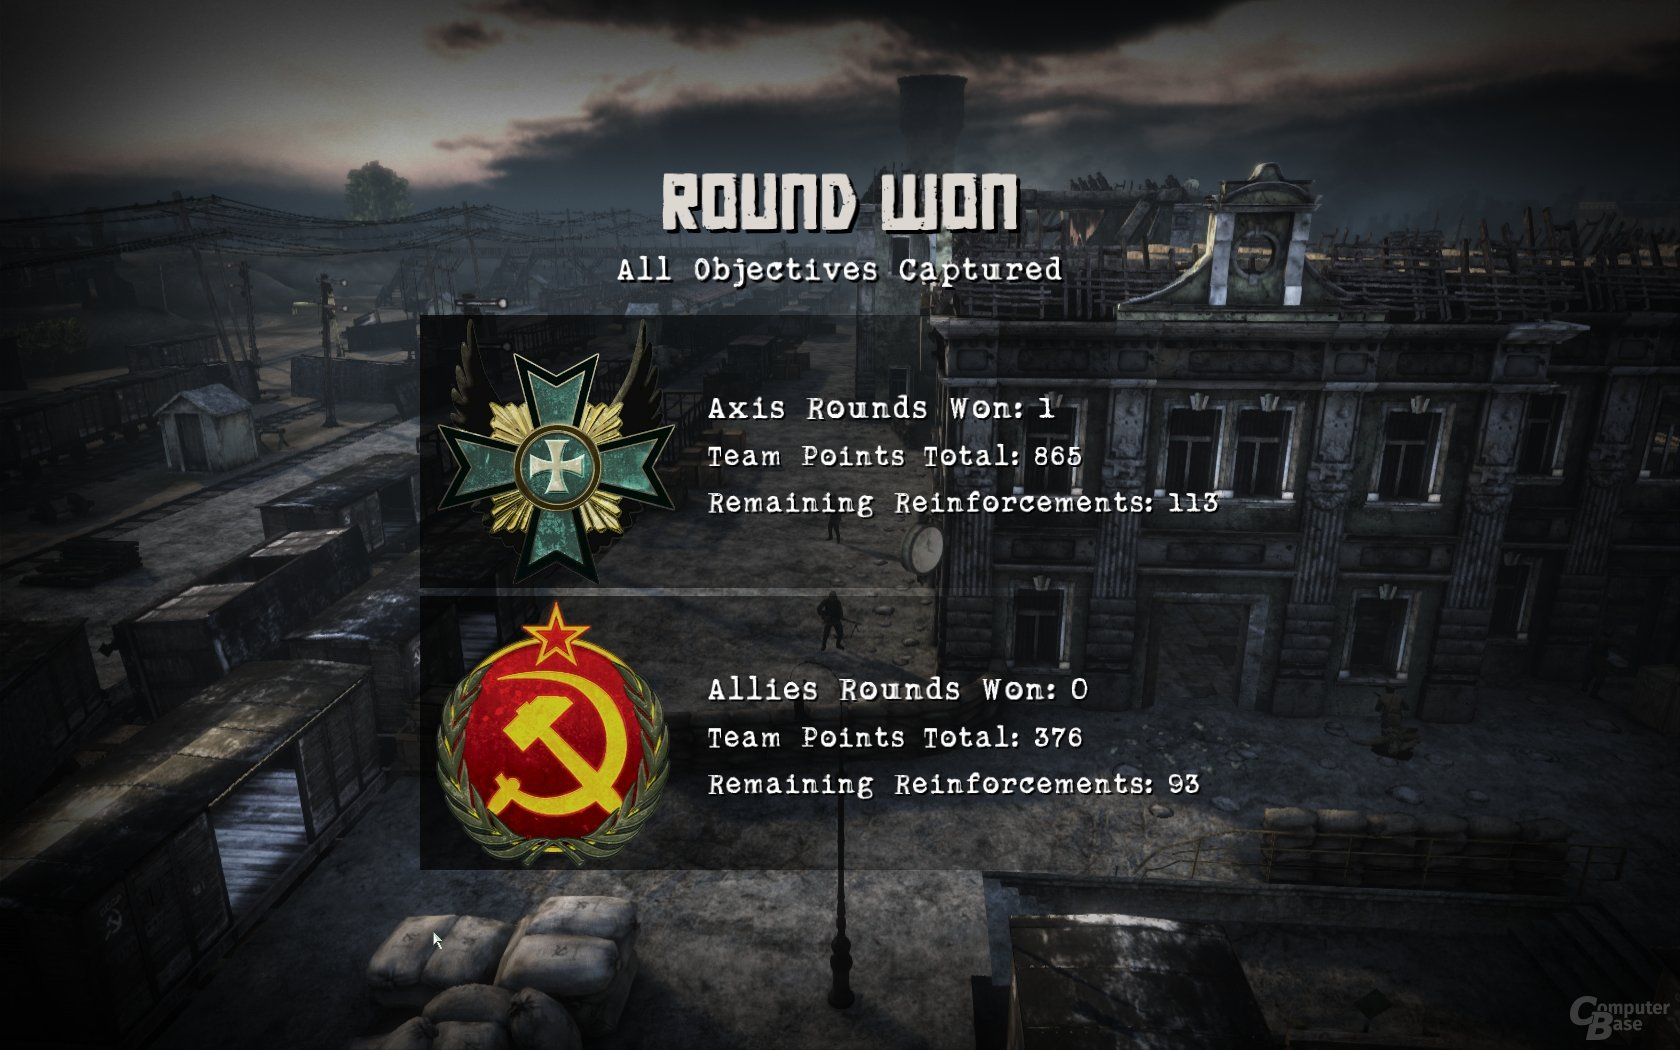 Red Orchestra 2 – Heroes of Stalingrad